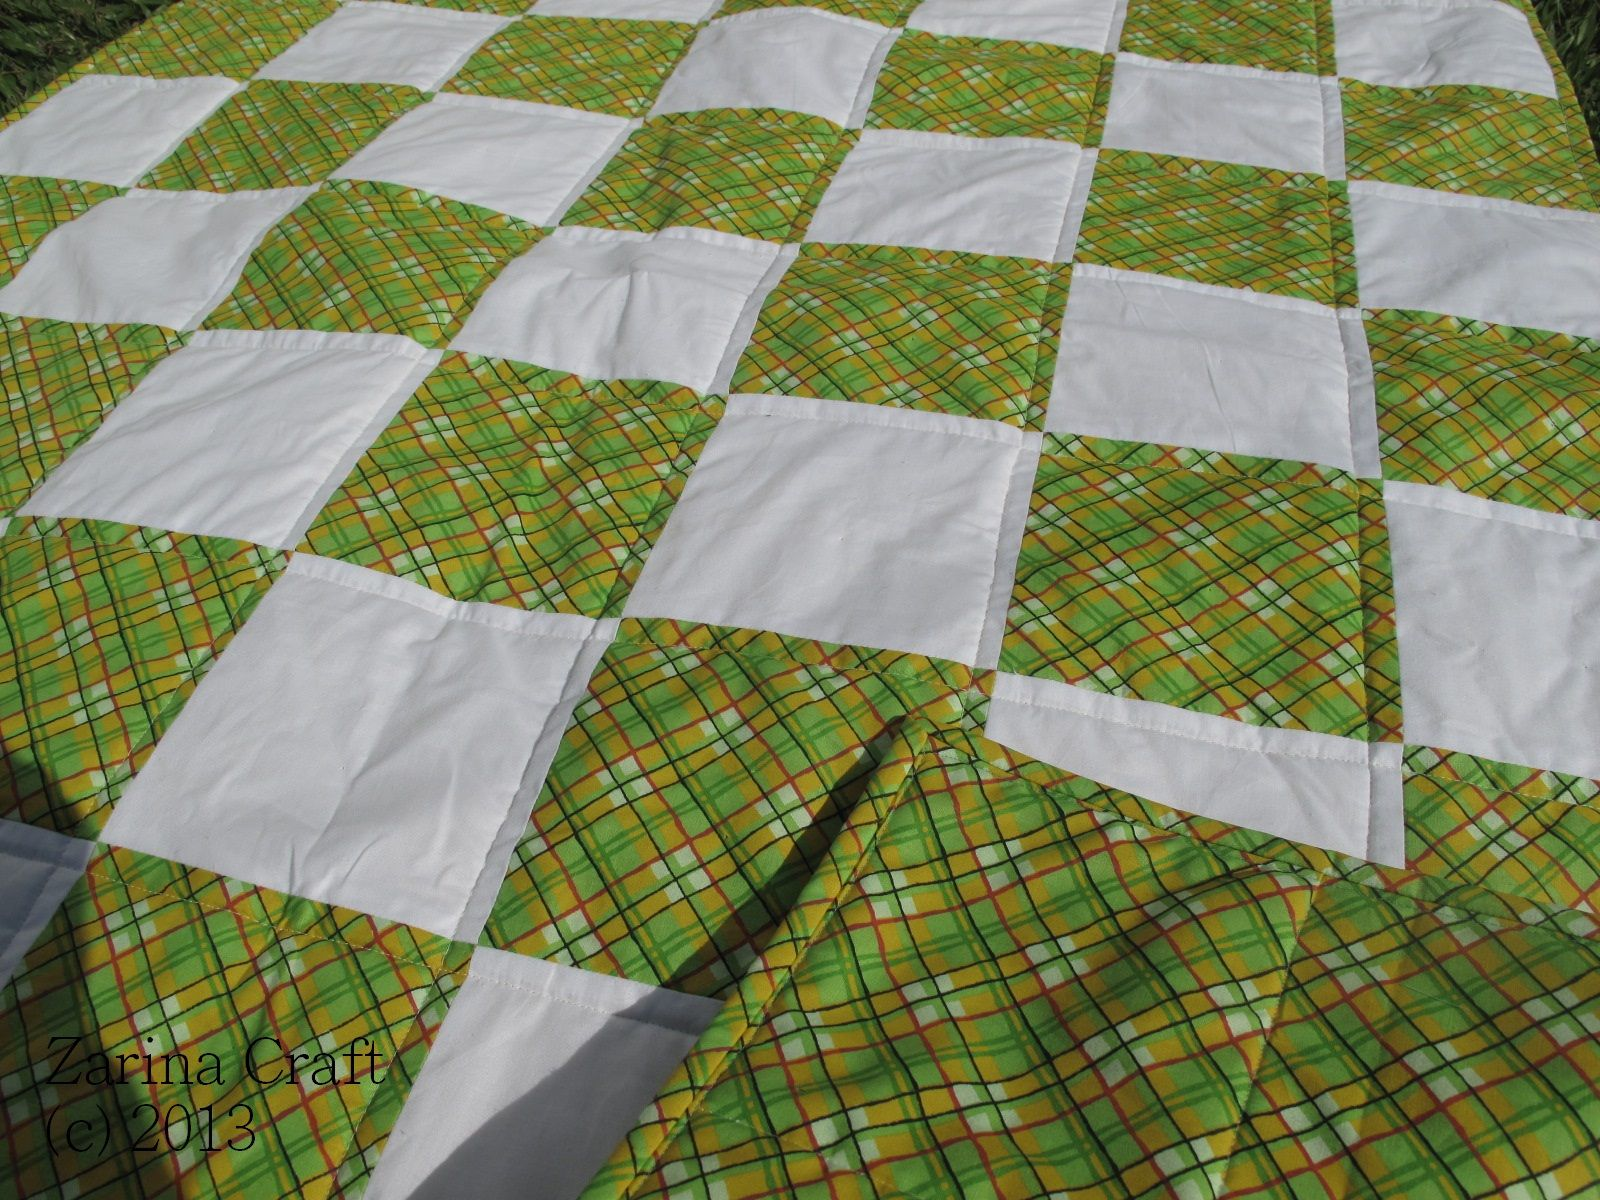 hese baby quilts are made from cotton. They are suitable for ... : how quilts are made - Adamdwight.com